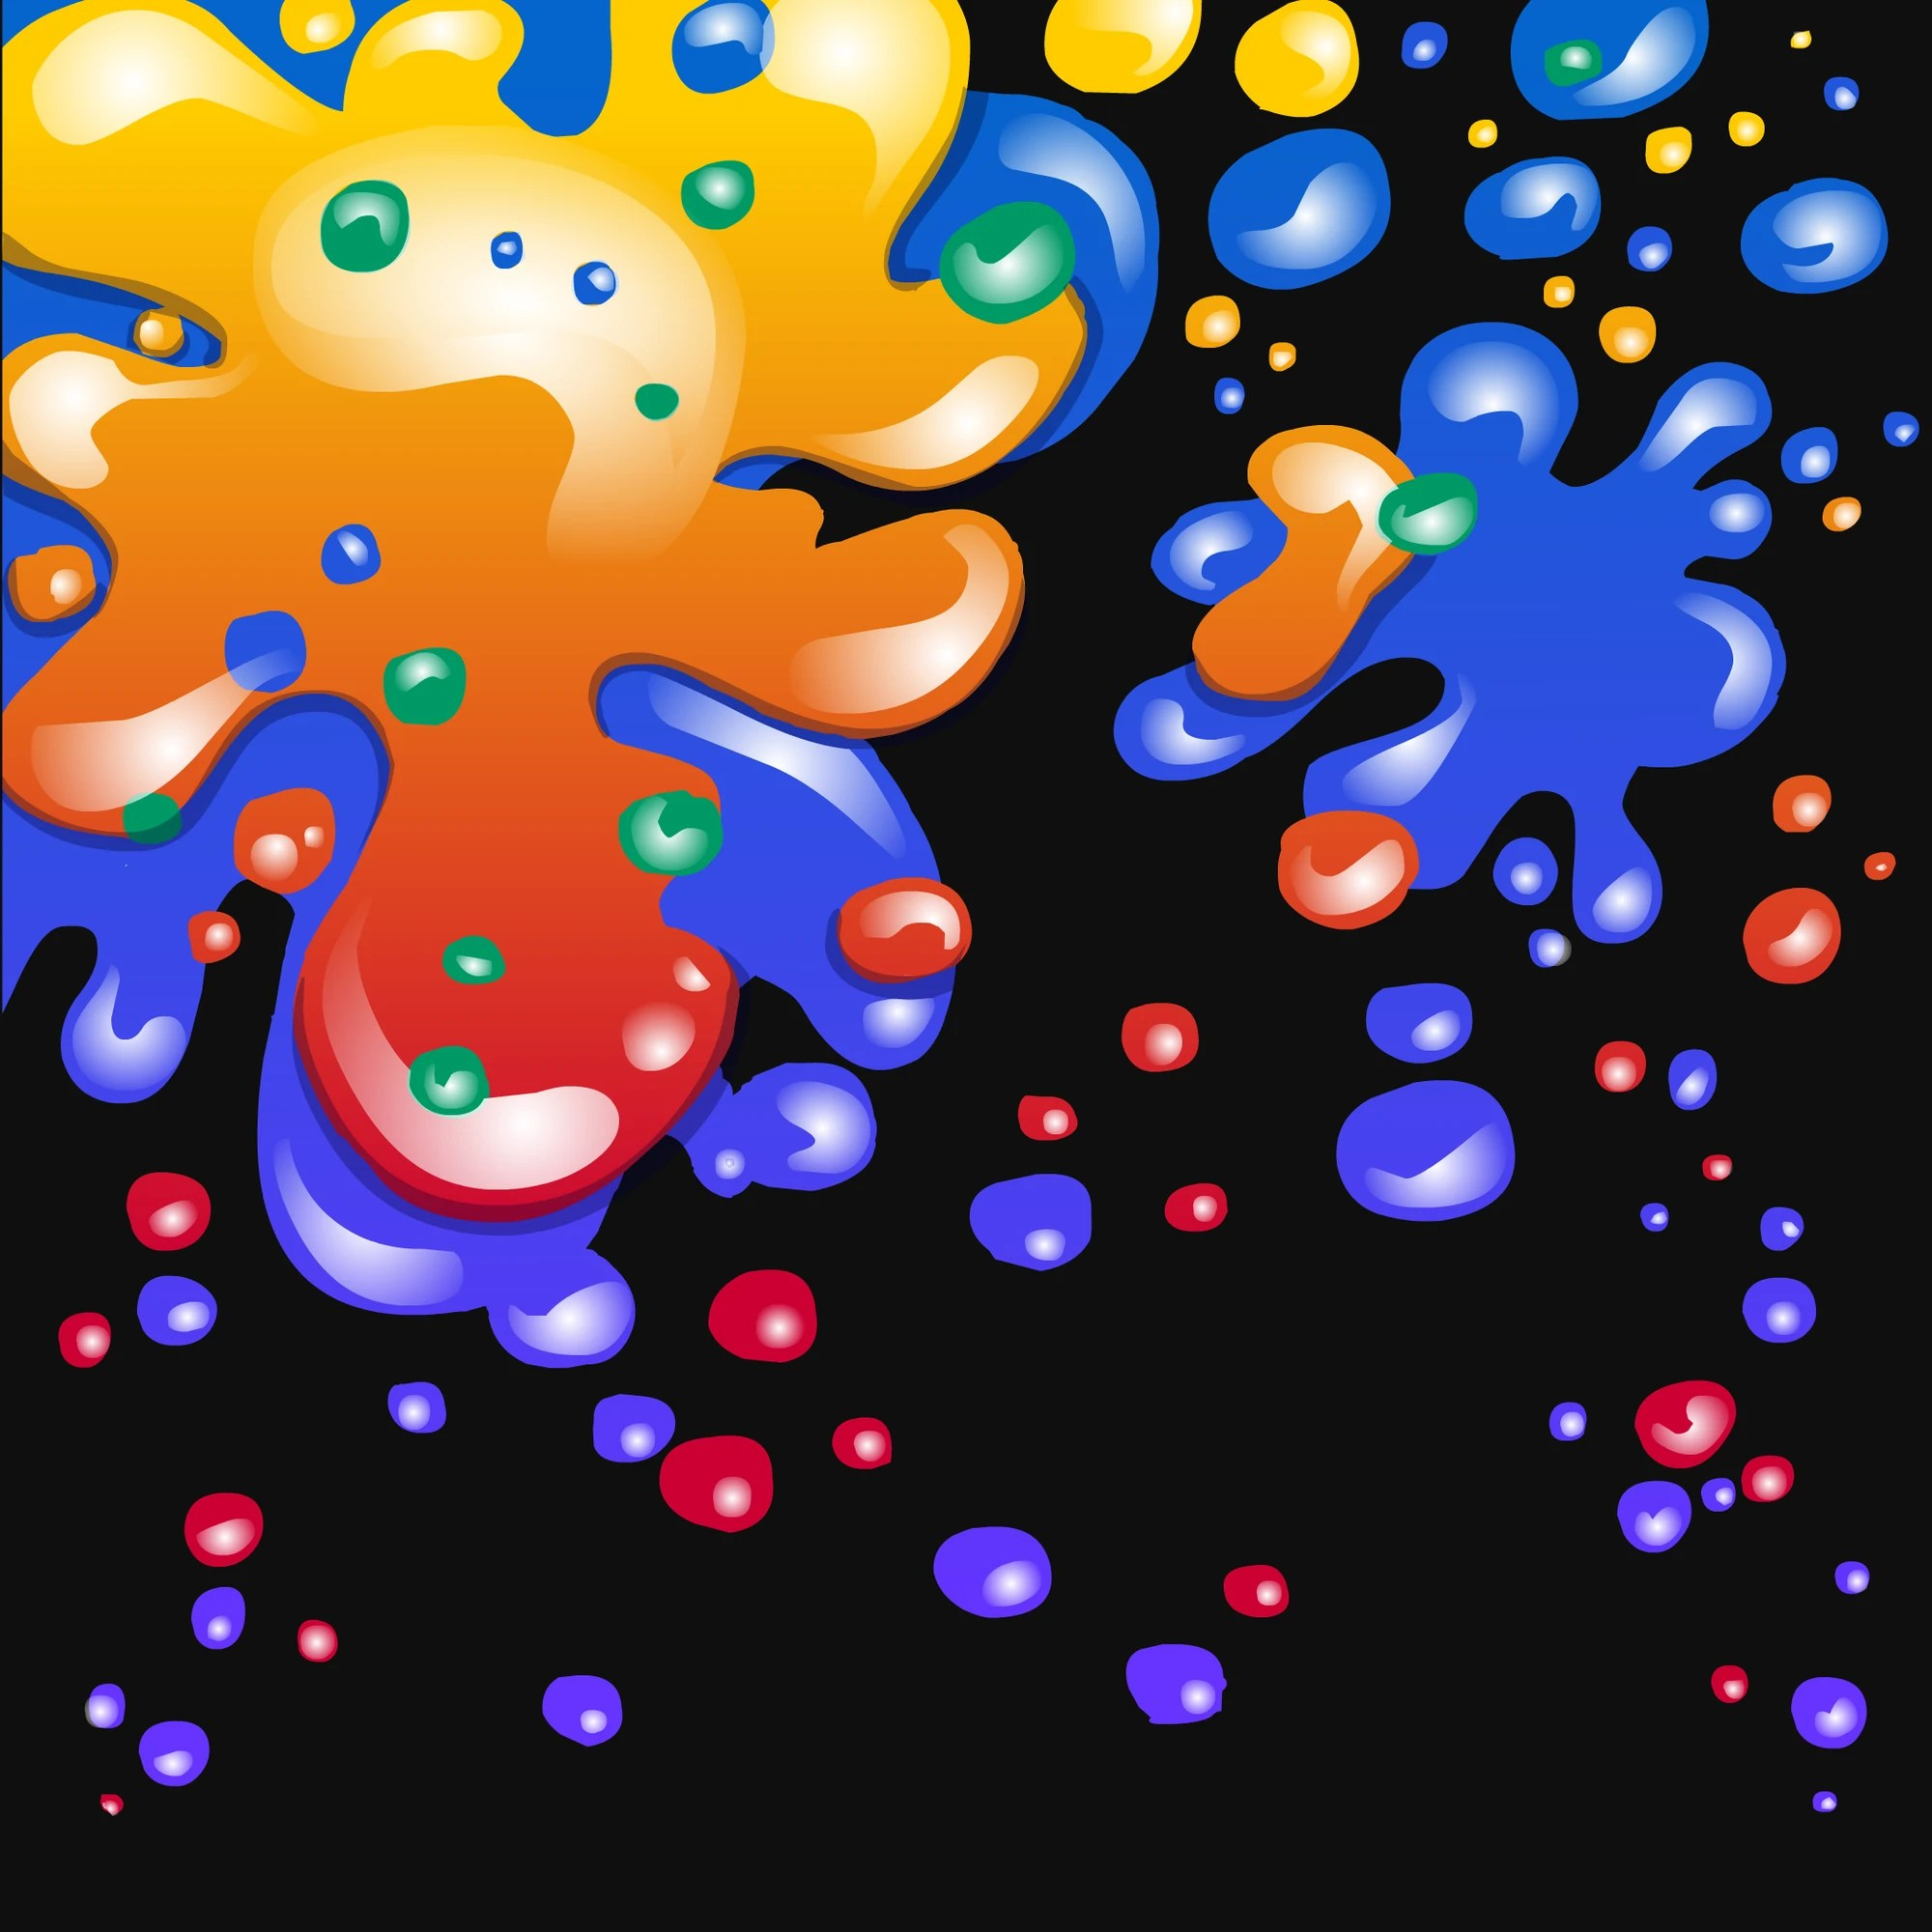 Paint Splatter Background Club Penguin Wiki Fandom Powered Wikia